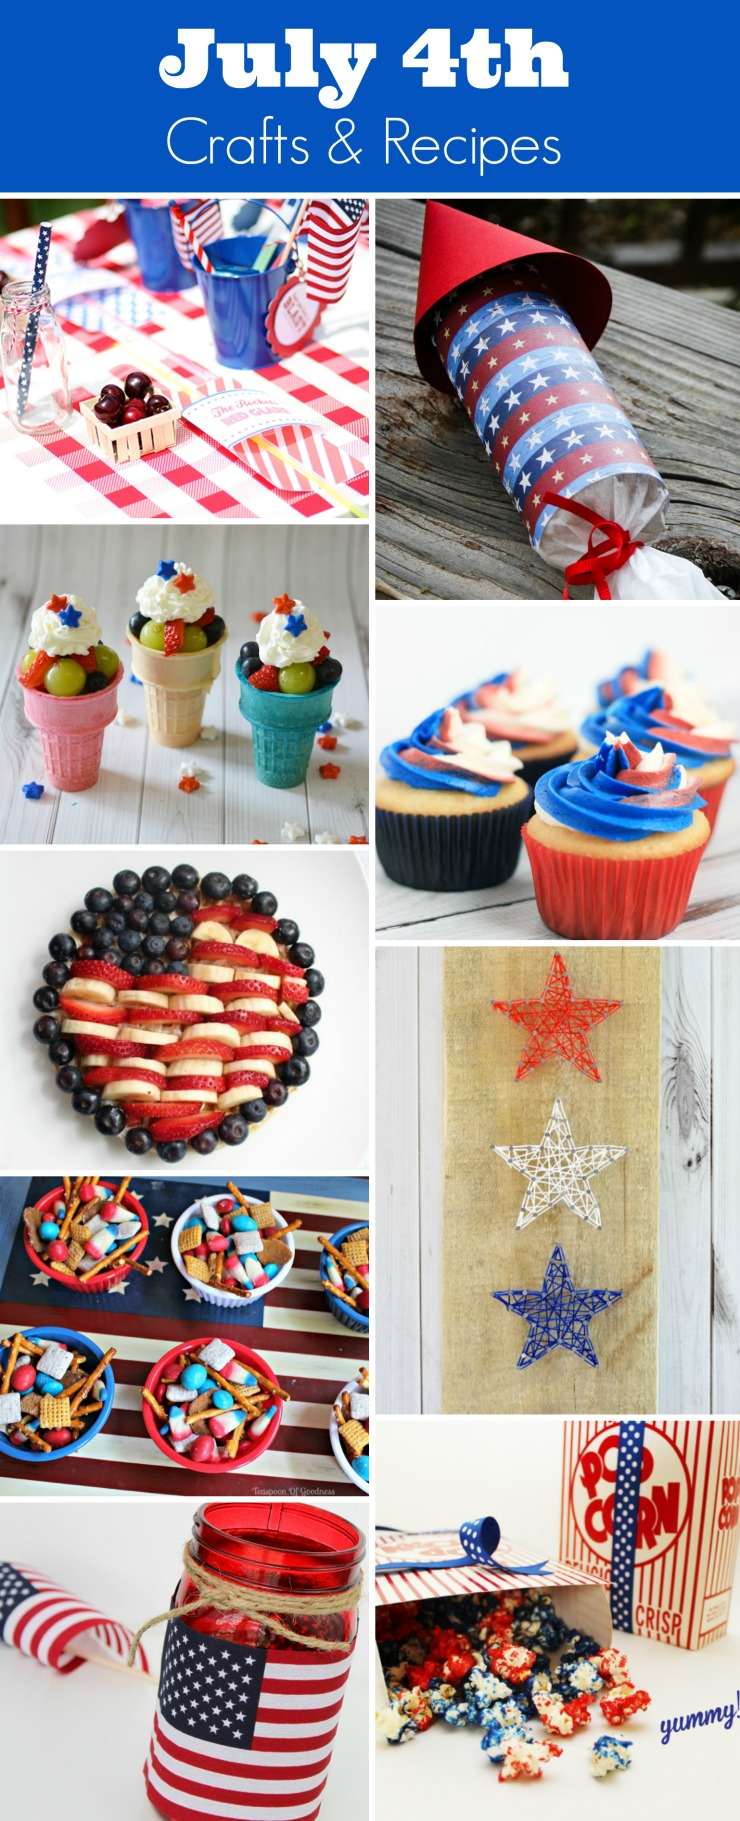 25 craft and recipe ideas for your July 4th celebration.